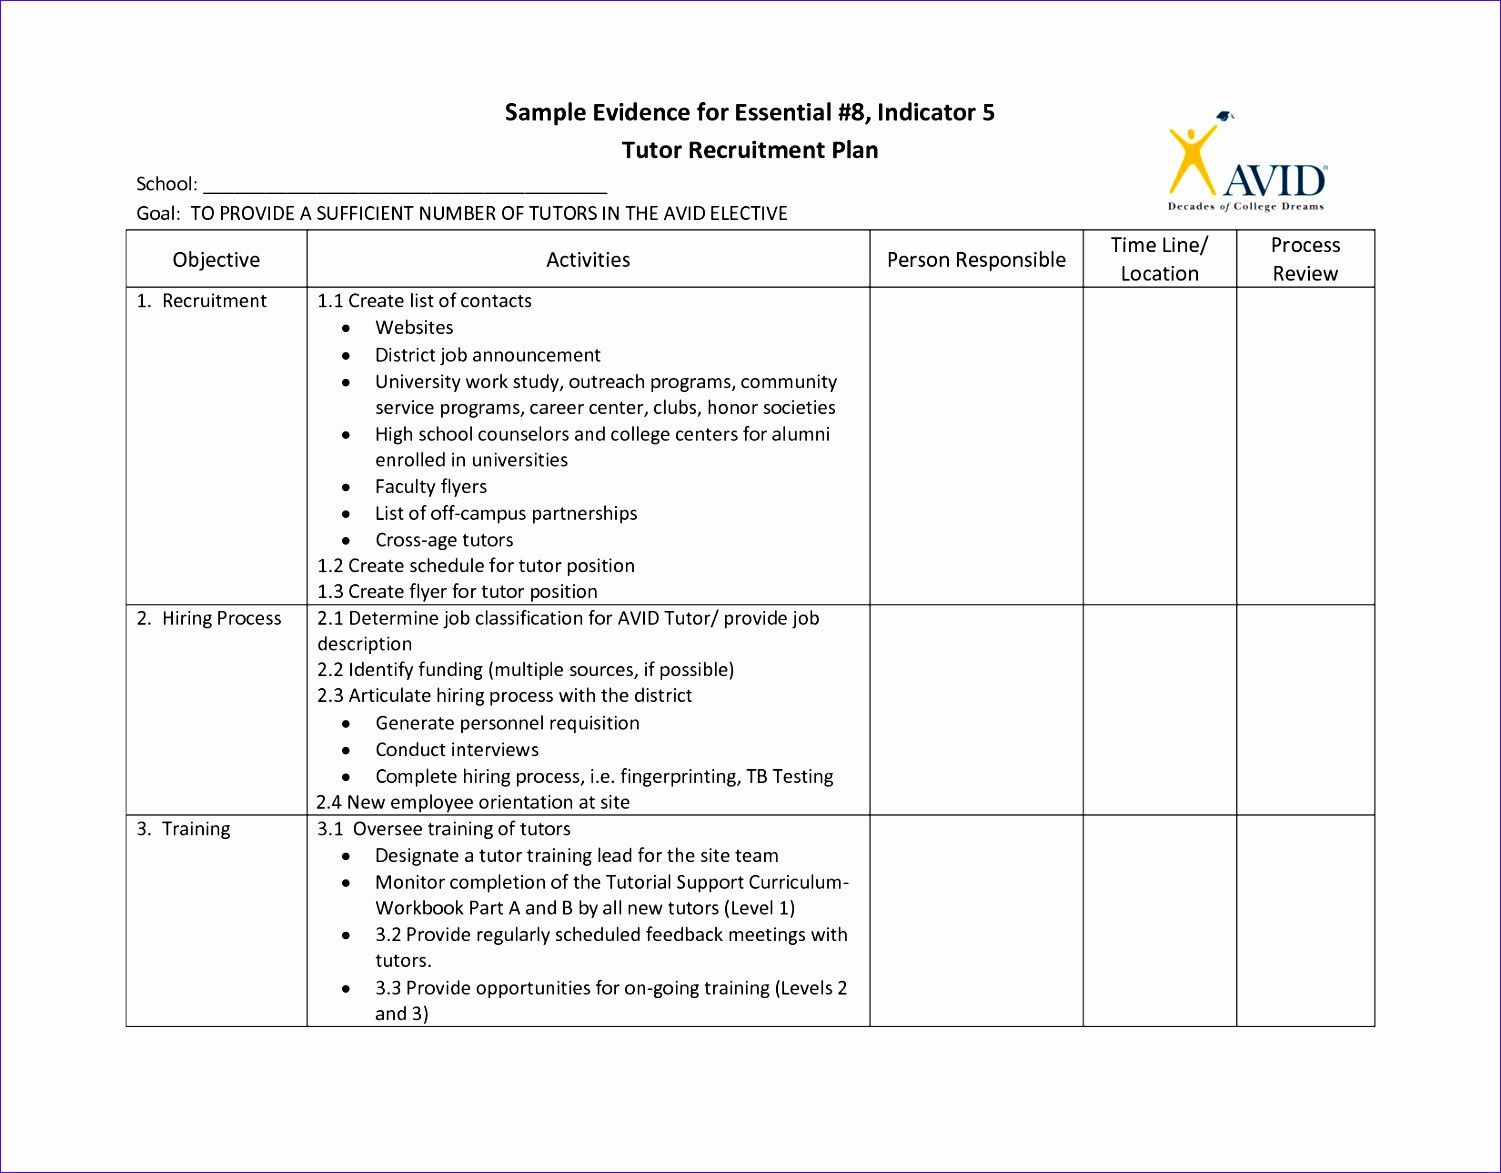 Workforce Plan Template Excel Awesome 6 Workforce Planning Template Excel Exceltemplates In 2020 Recruitment Plan Simple Business Plan Template How To Plan